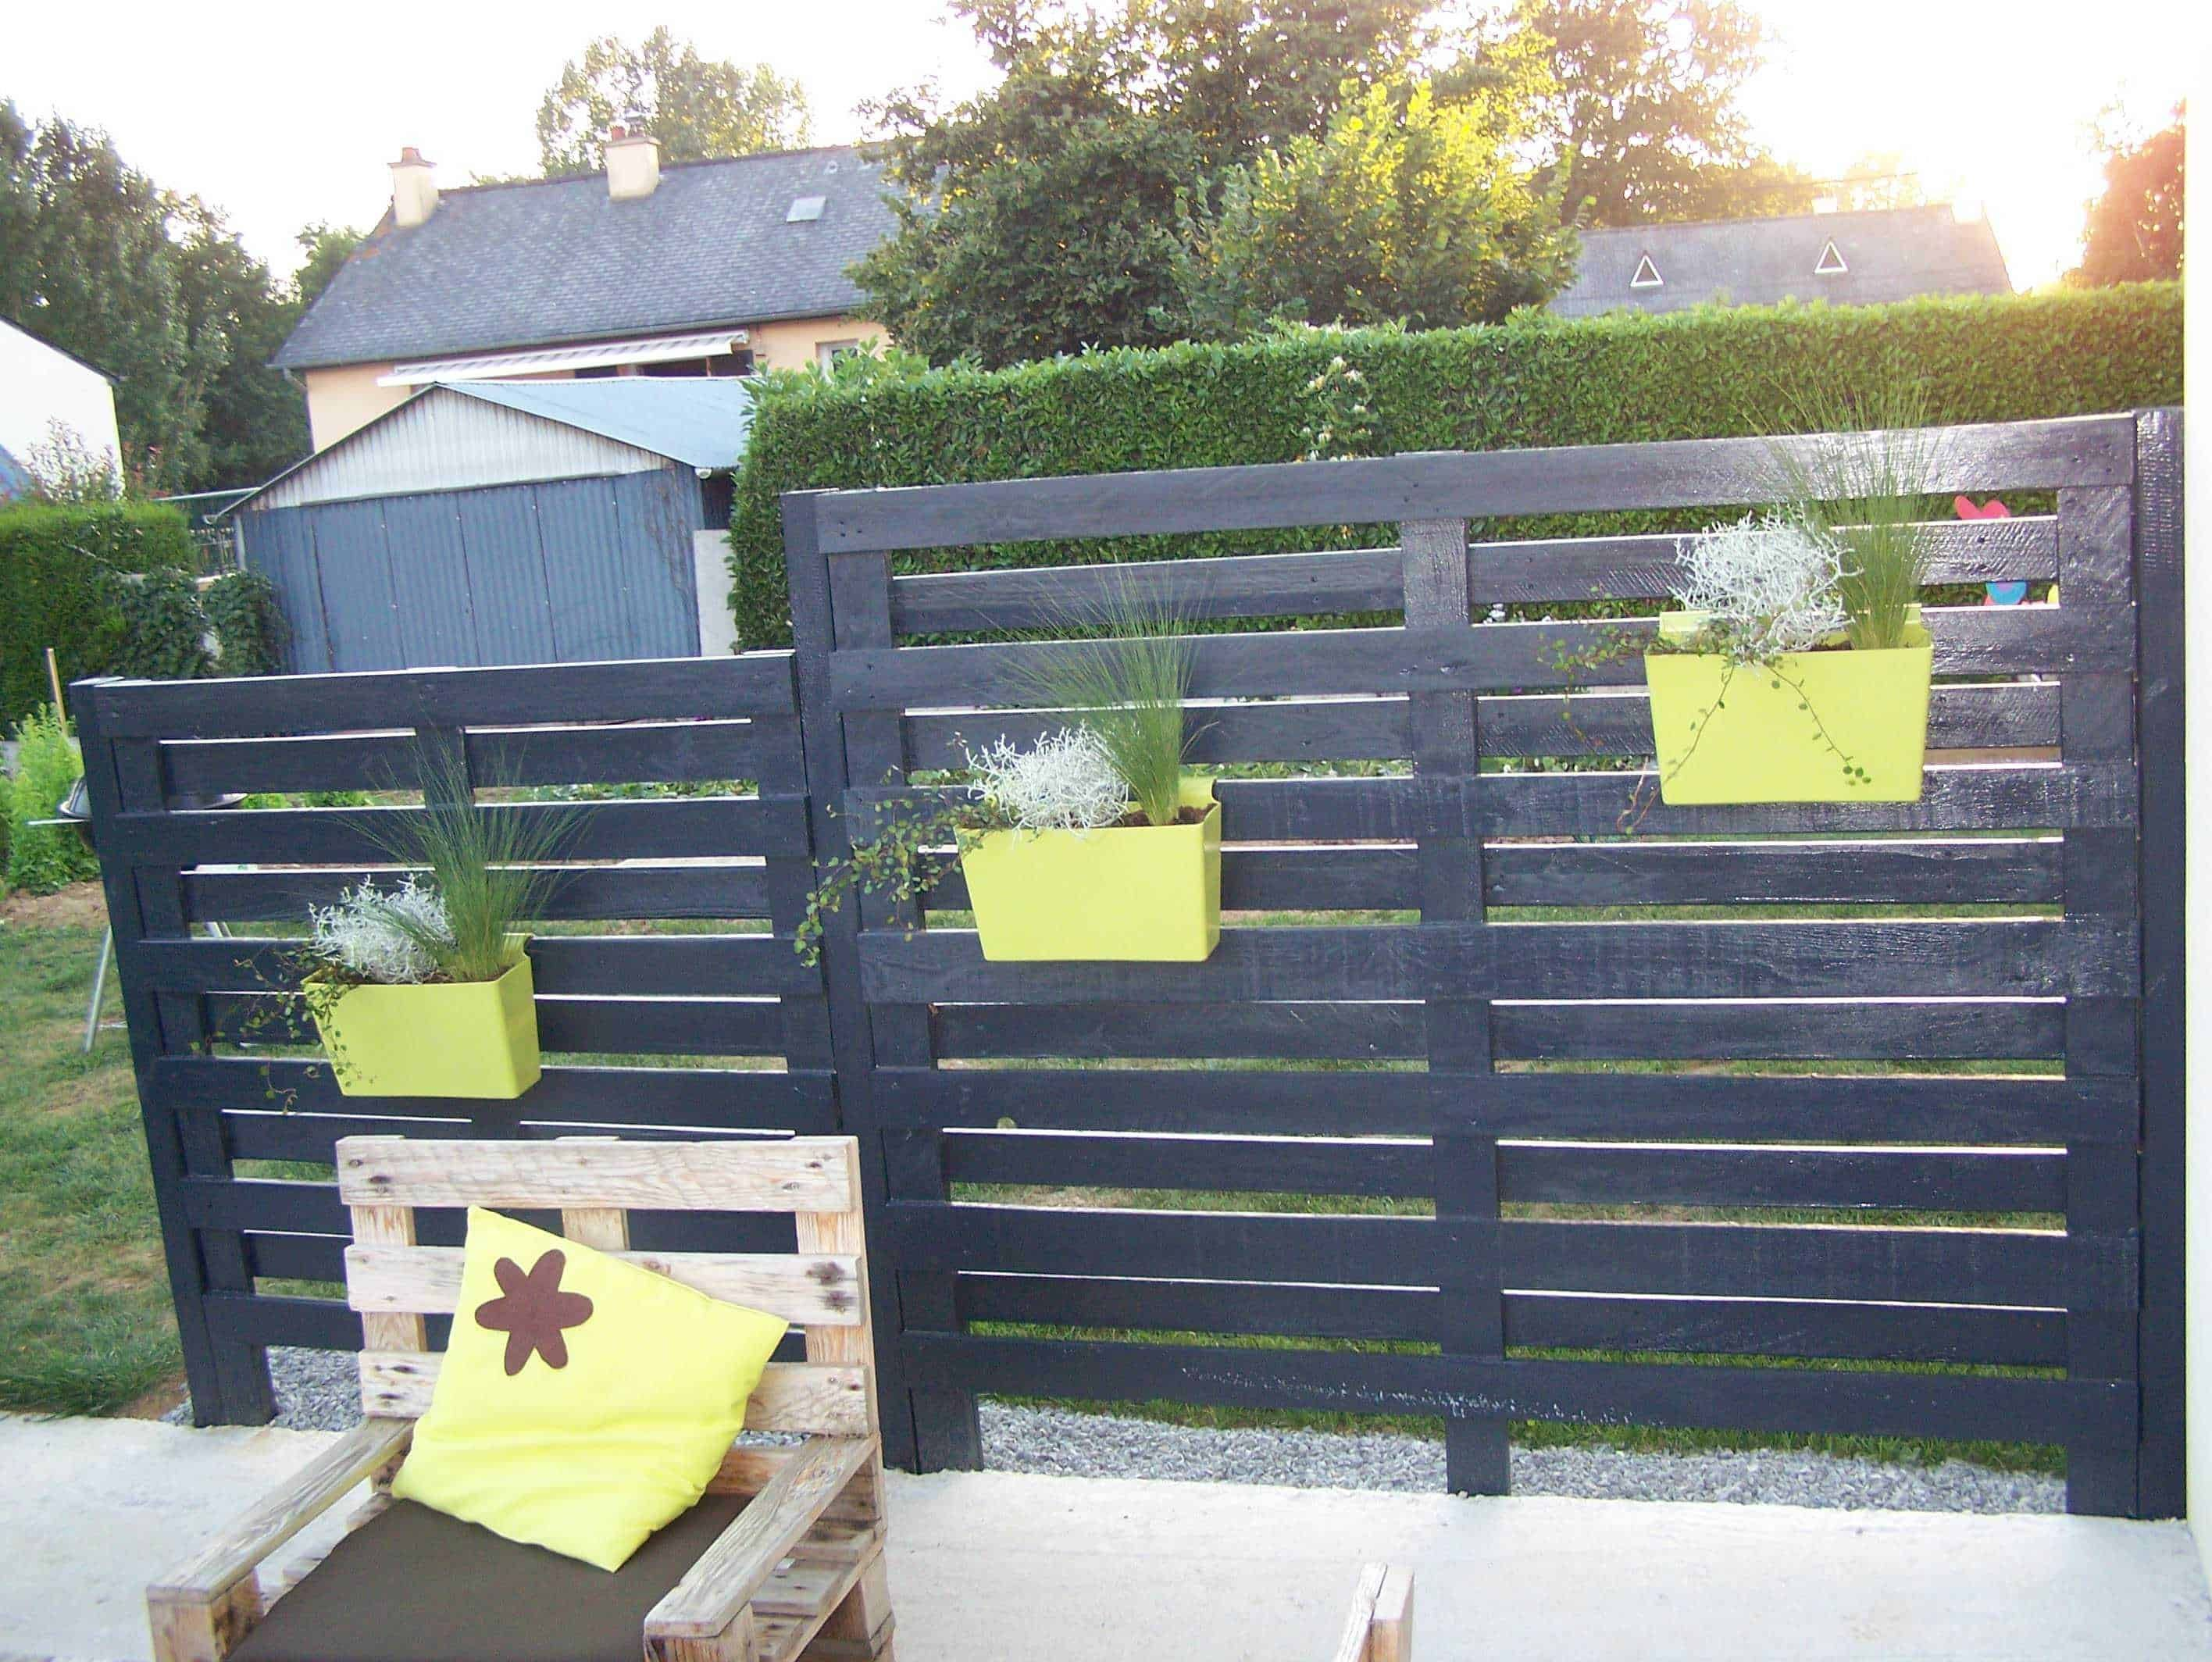 Pallets Claustra Fence 1001 Pallets Pallet Privacy Fences Privacy Screen Outdoor Wood Pallet Fence